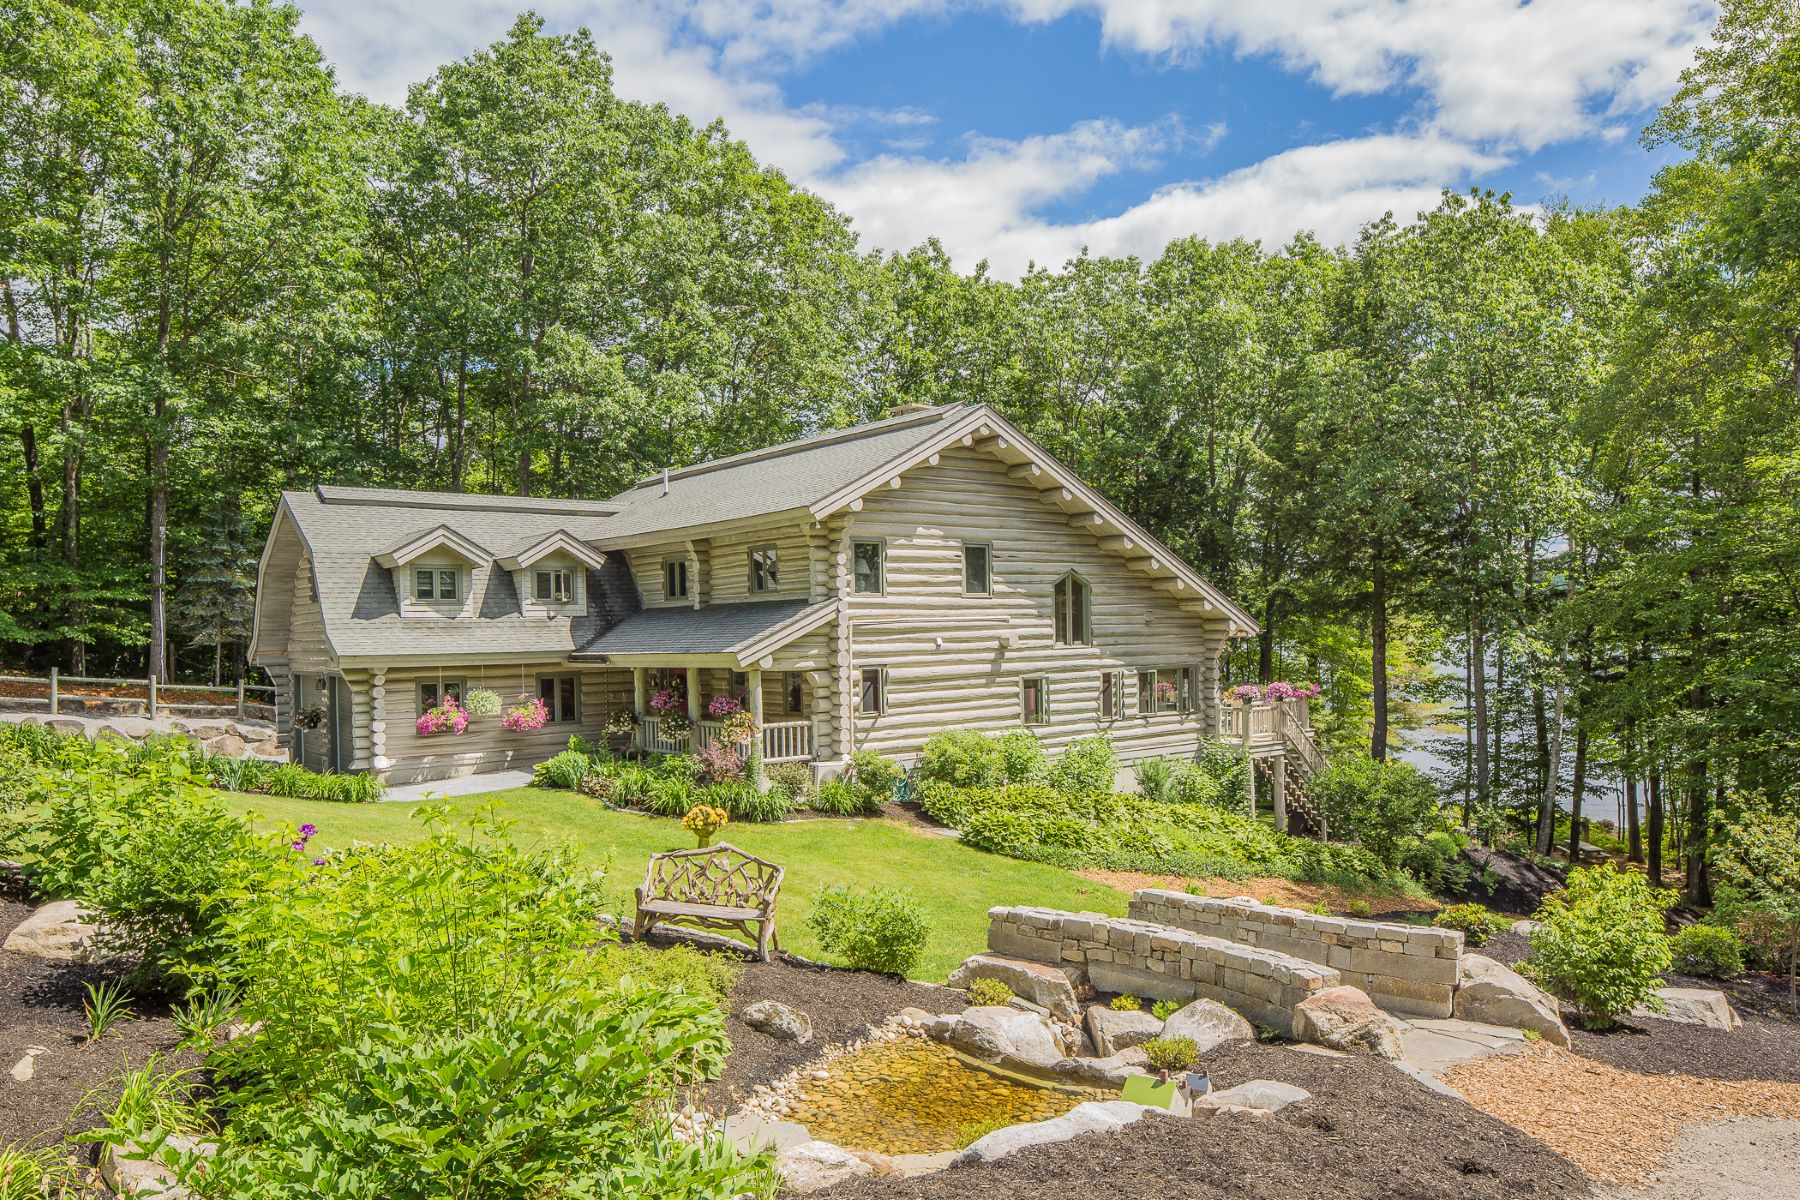 Single Family Home for Sale at 173 Malcolm Road 173 Malcolm Road Bridgton, Maine 04009 United States